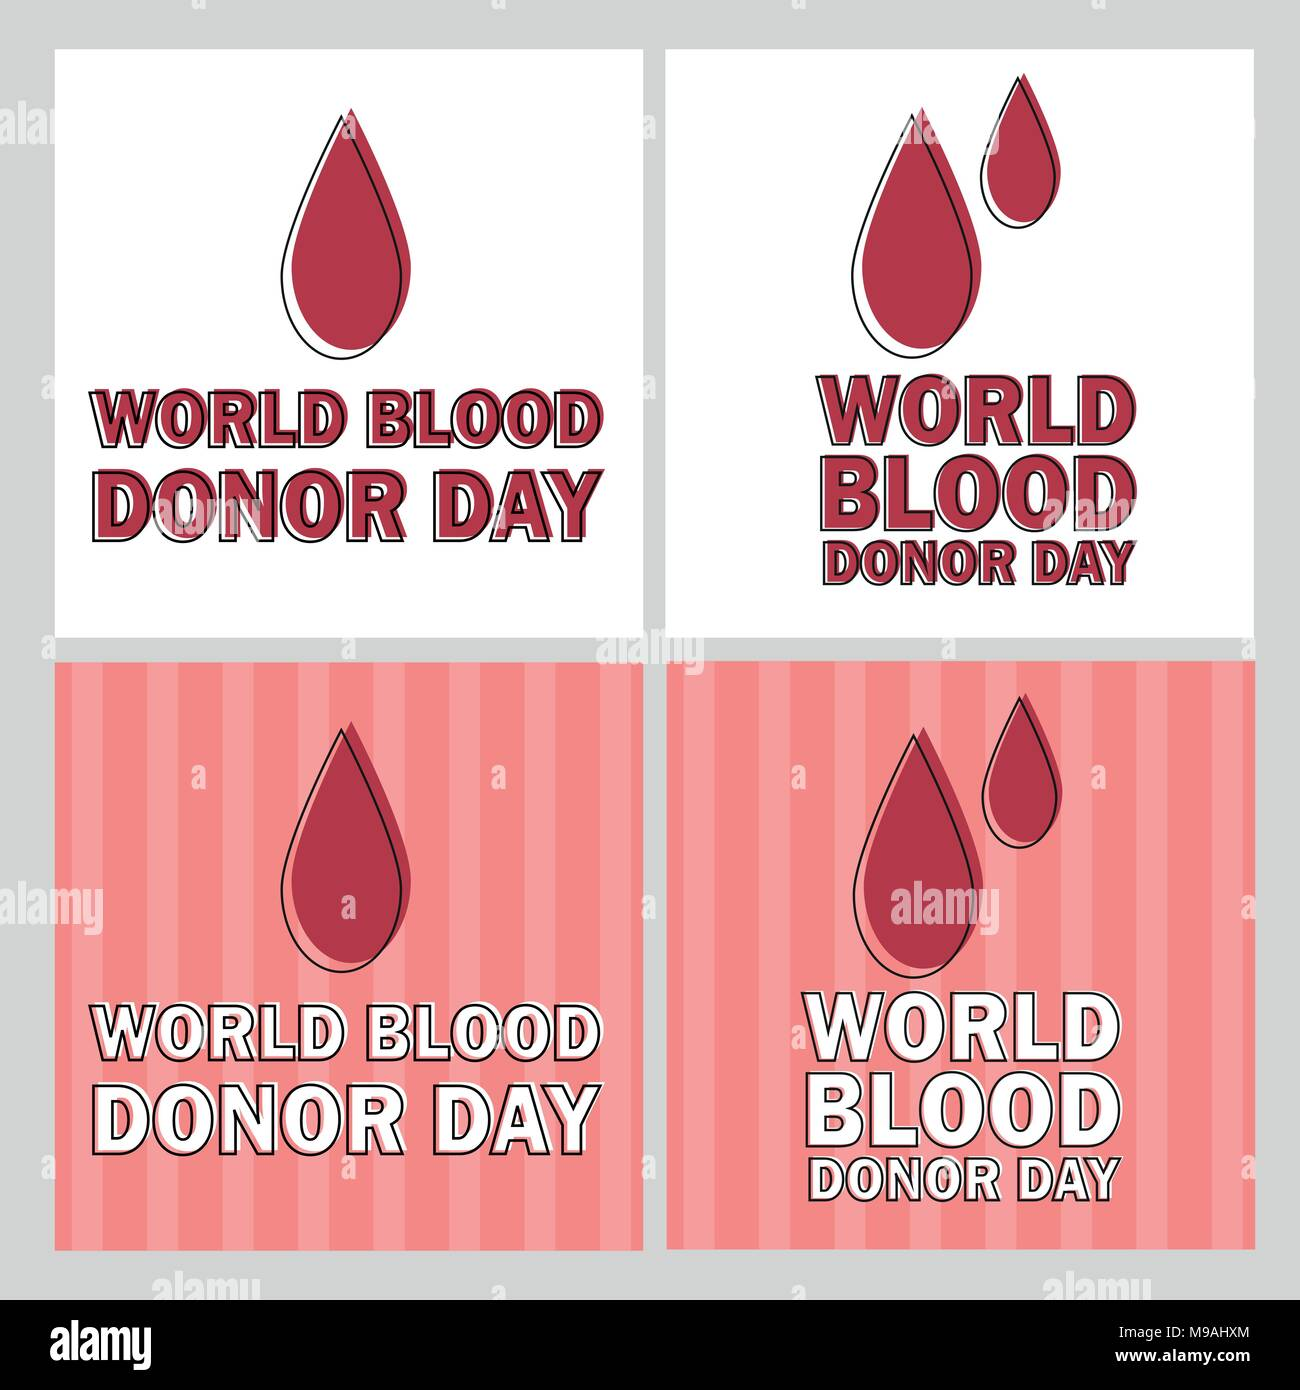 Vector illustration of Donate blood concept with red drop -World blood donor day - Stock Image